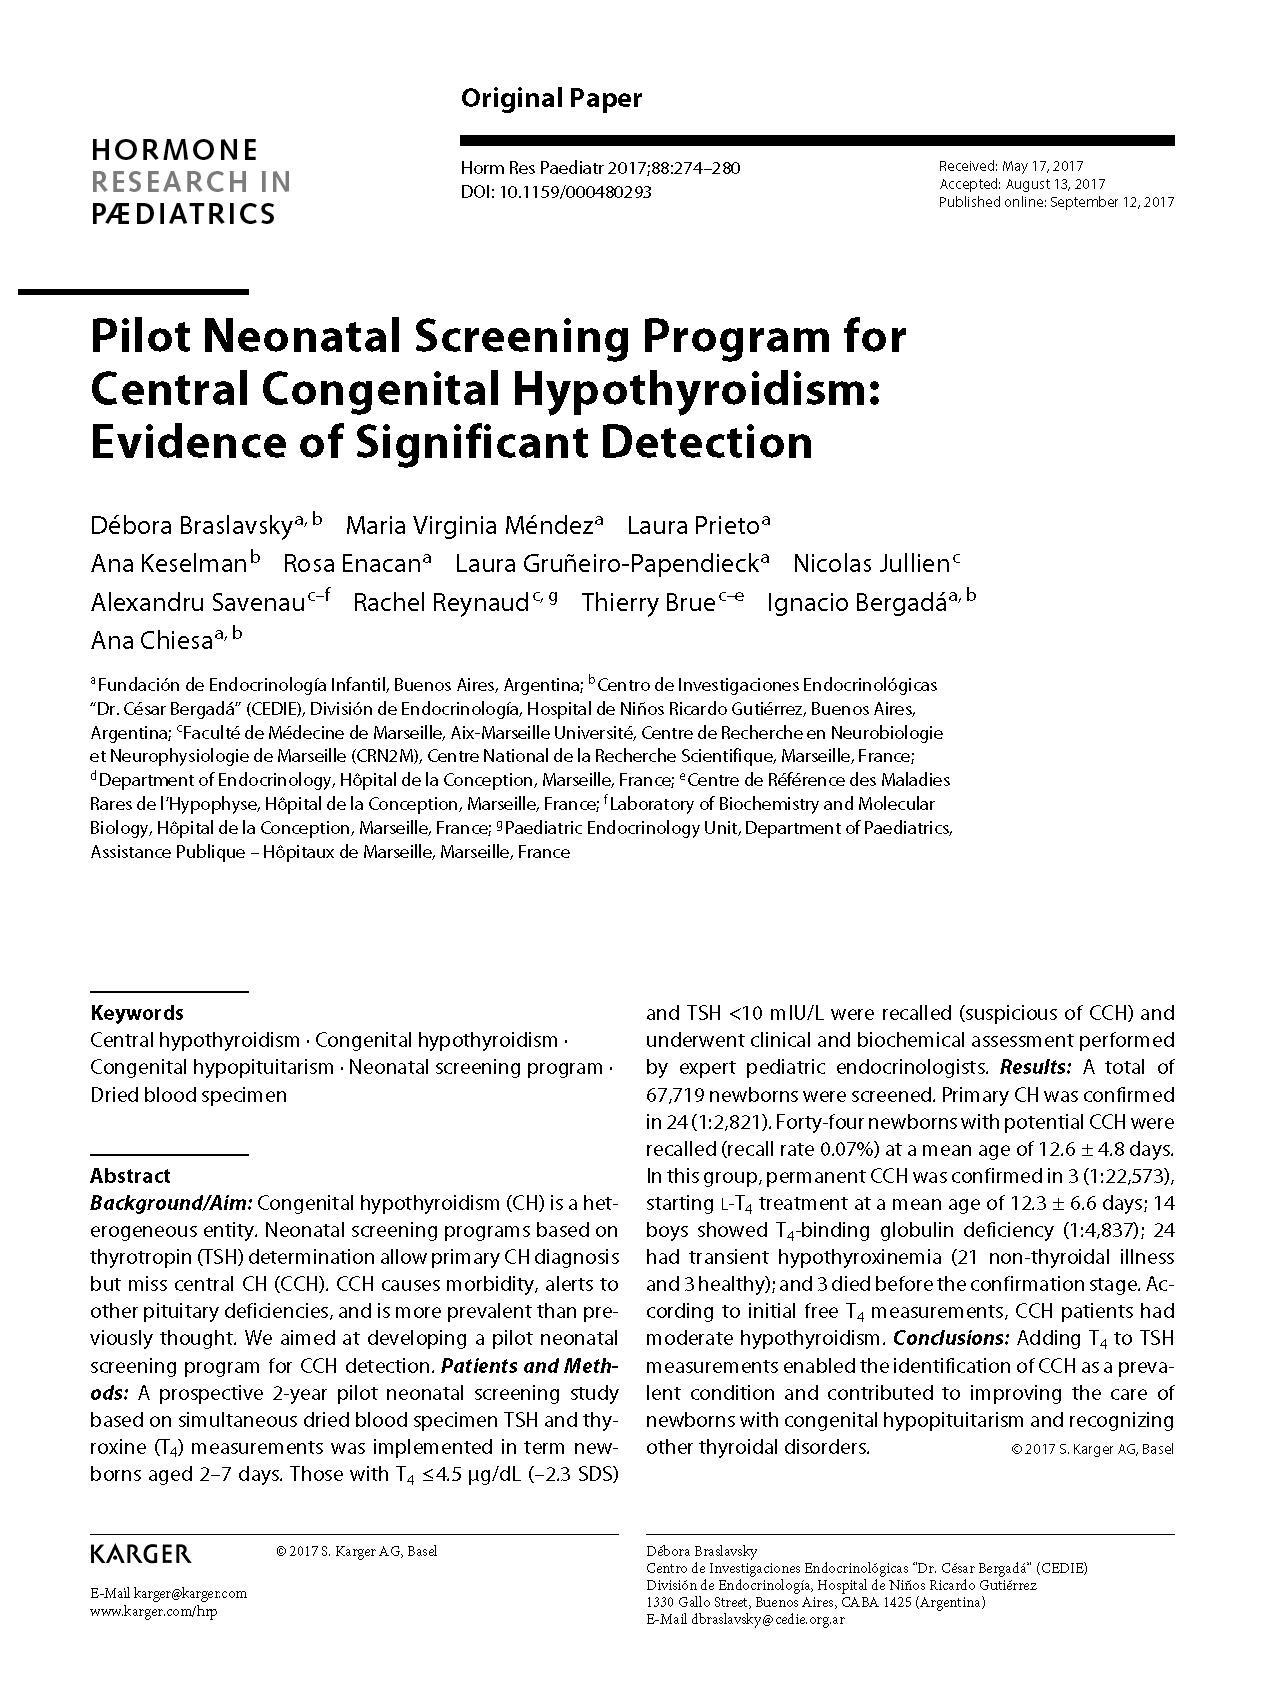 Pilot Neonatal Screening Program for Central Congenital Hypothyroidism: Evidence of Significant Detection